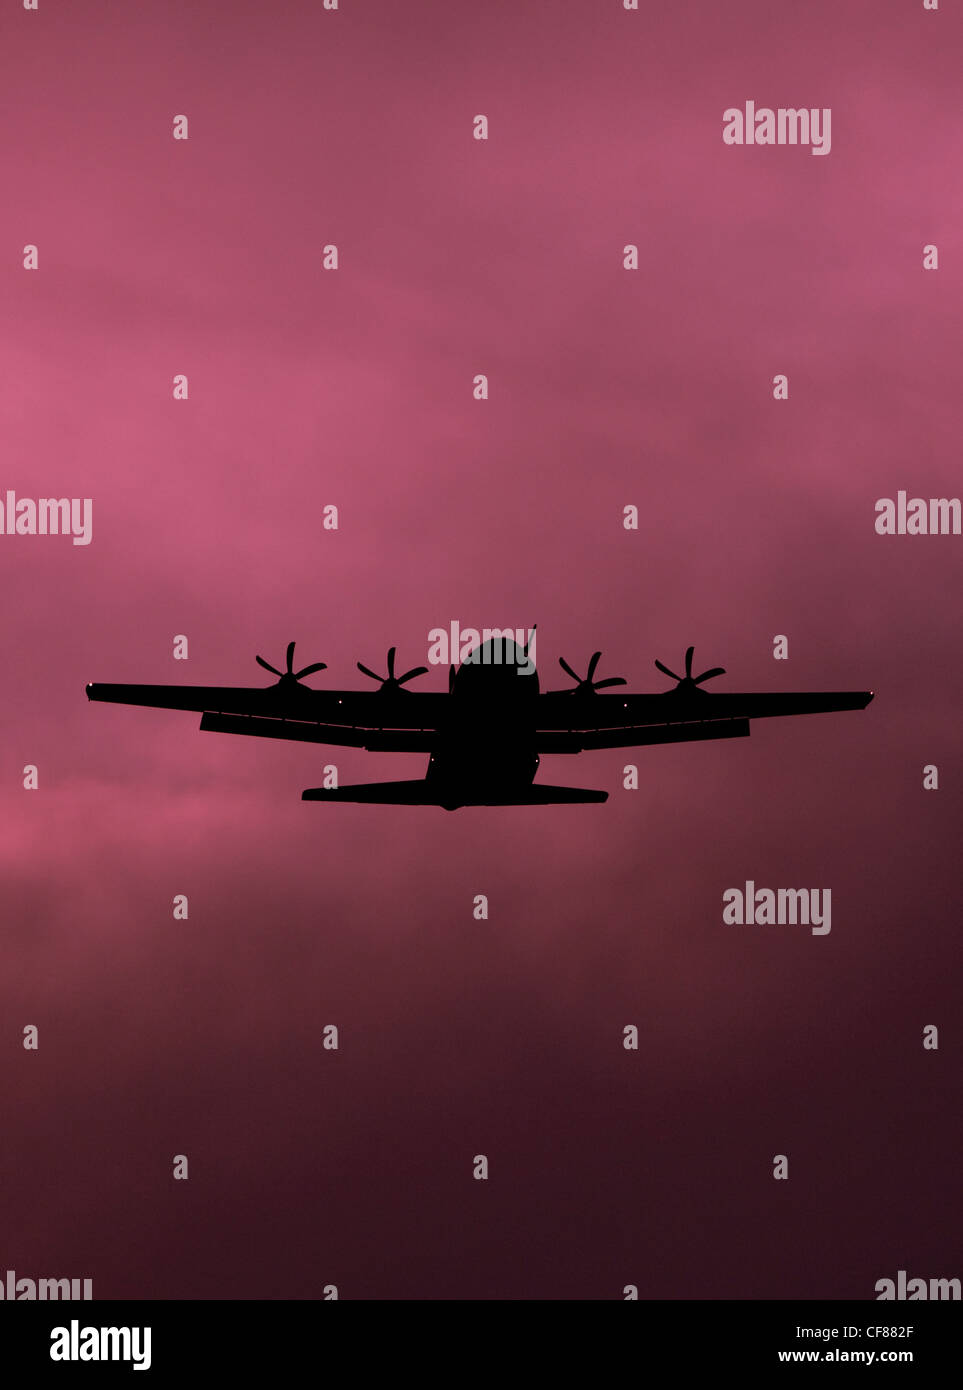 A Hercules military transport plane silhouetted against a magenta / red sky - Stock Image